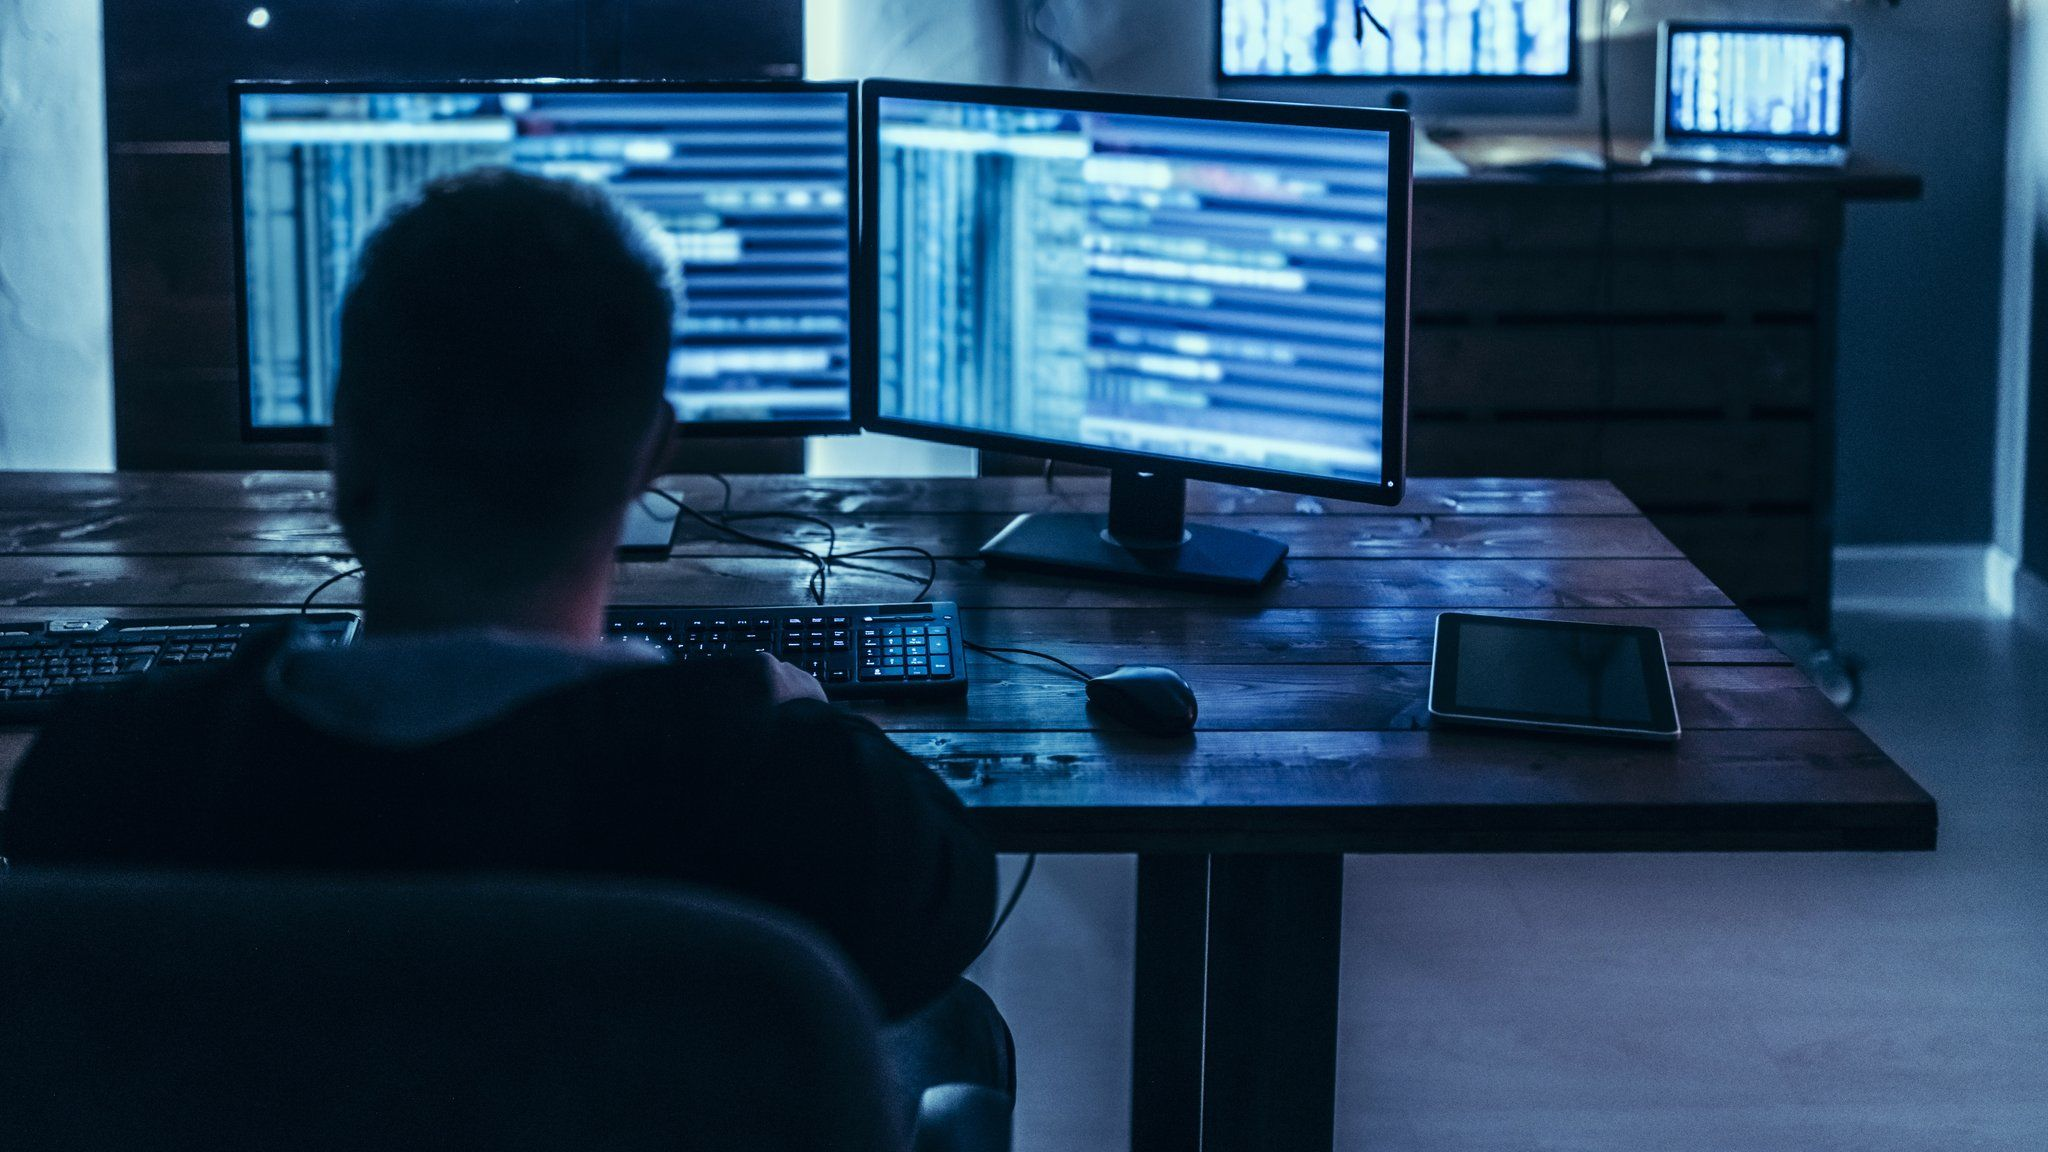 A hacker at a computer in a dark room